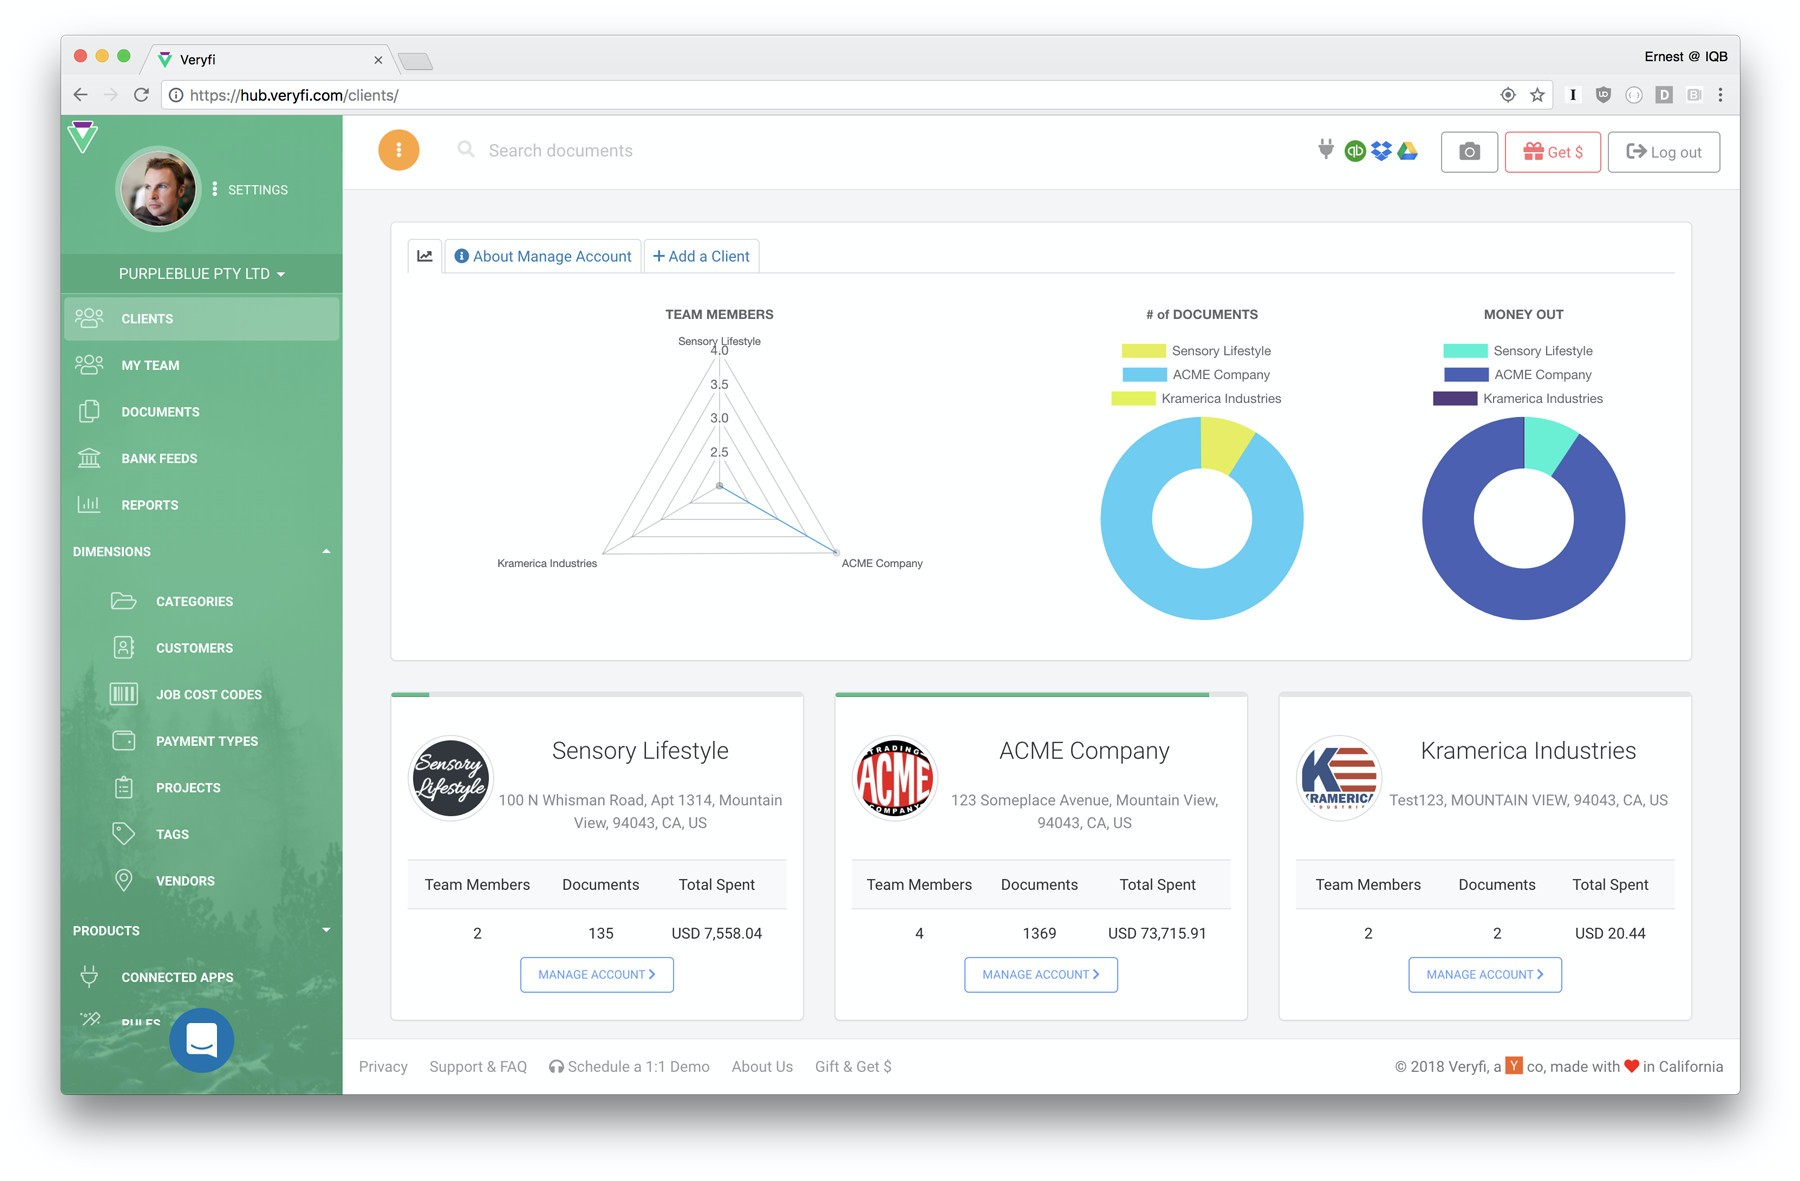 Accounting Practice Management by Veryfi for CFOs, CPAs & Bookkeepers. Accountants can earn revenue share by bringing on board clients to the Veryfi platform.